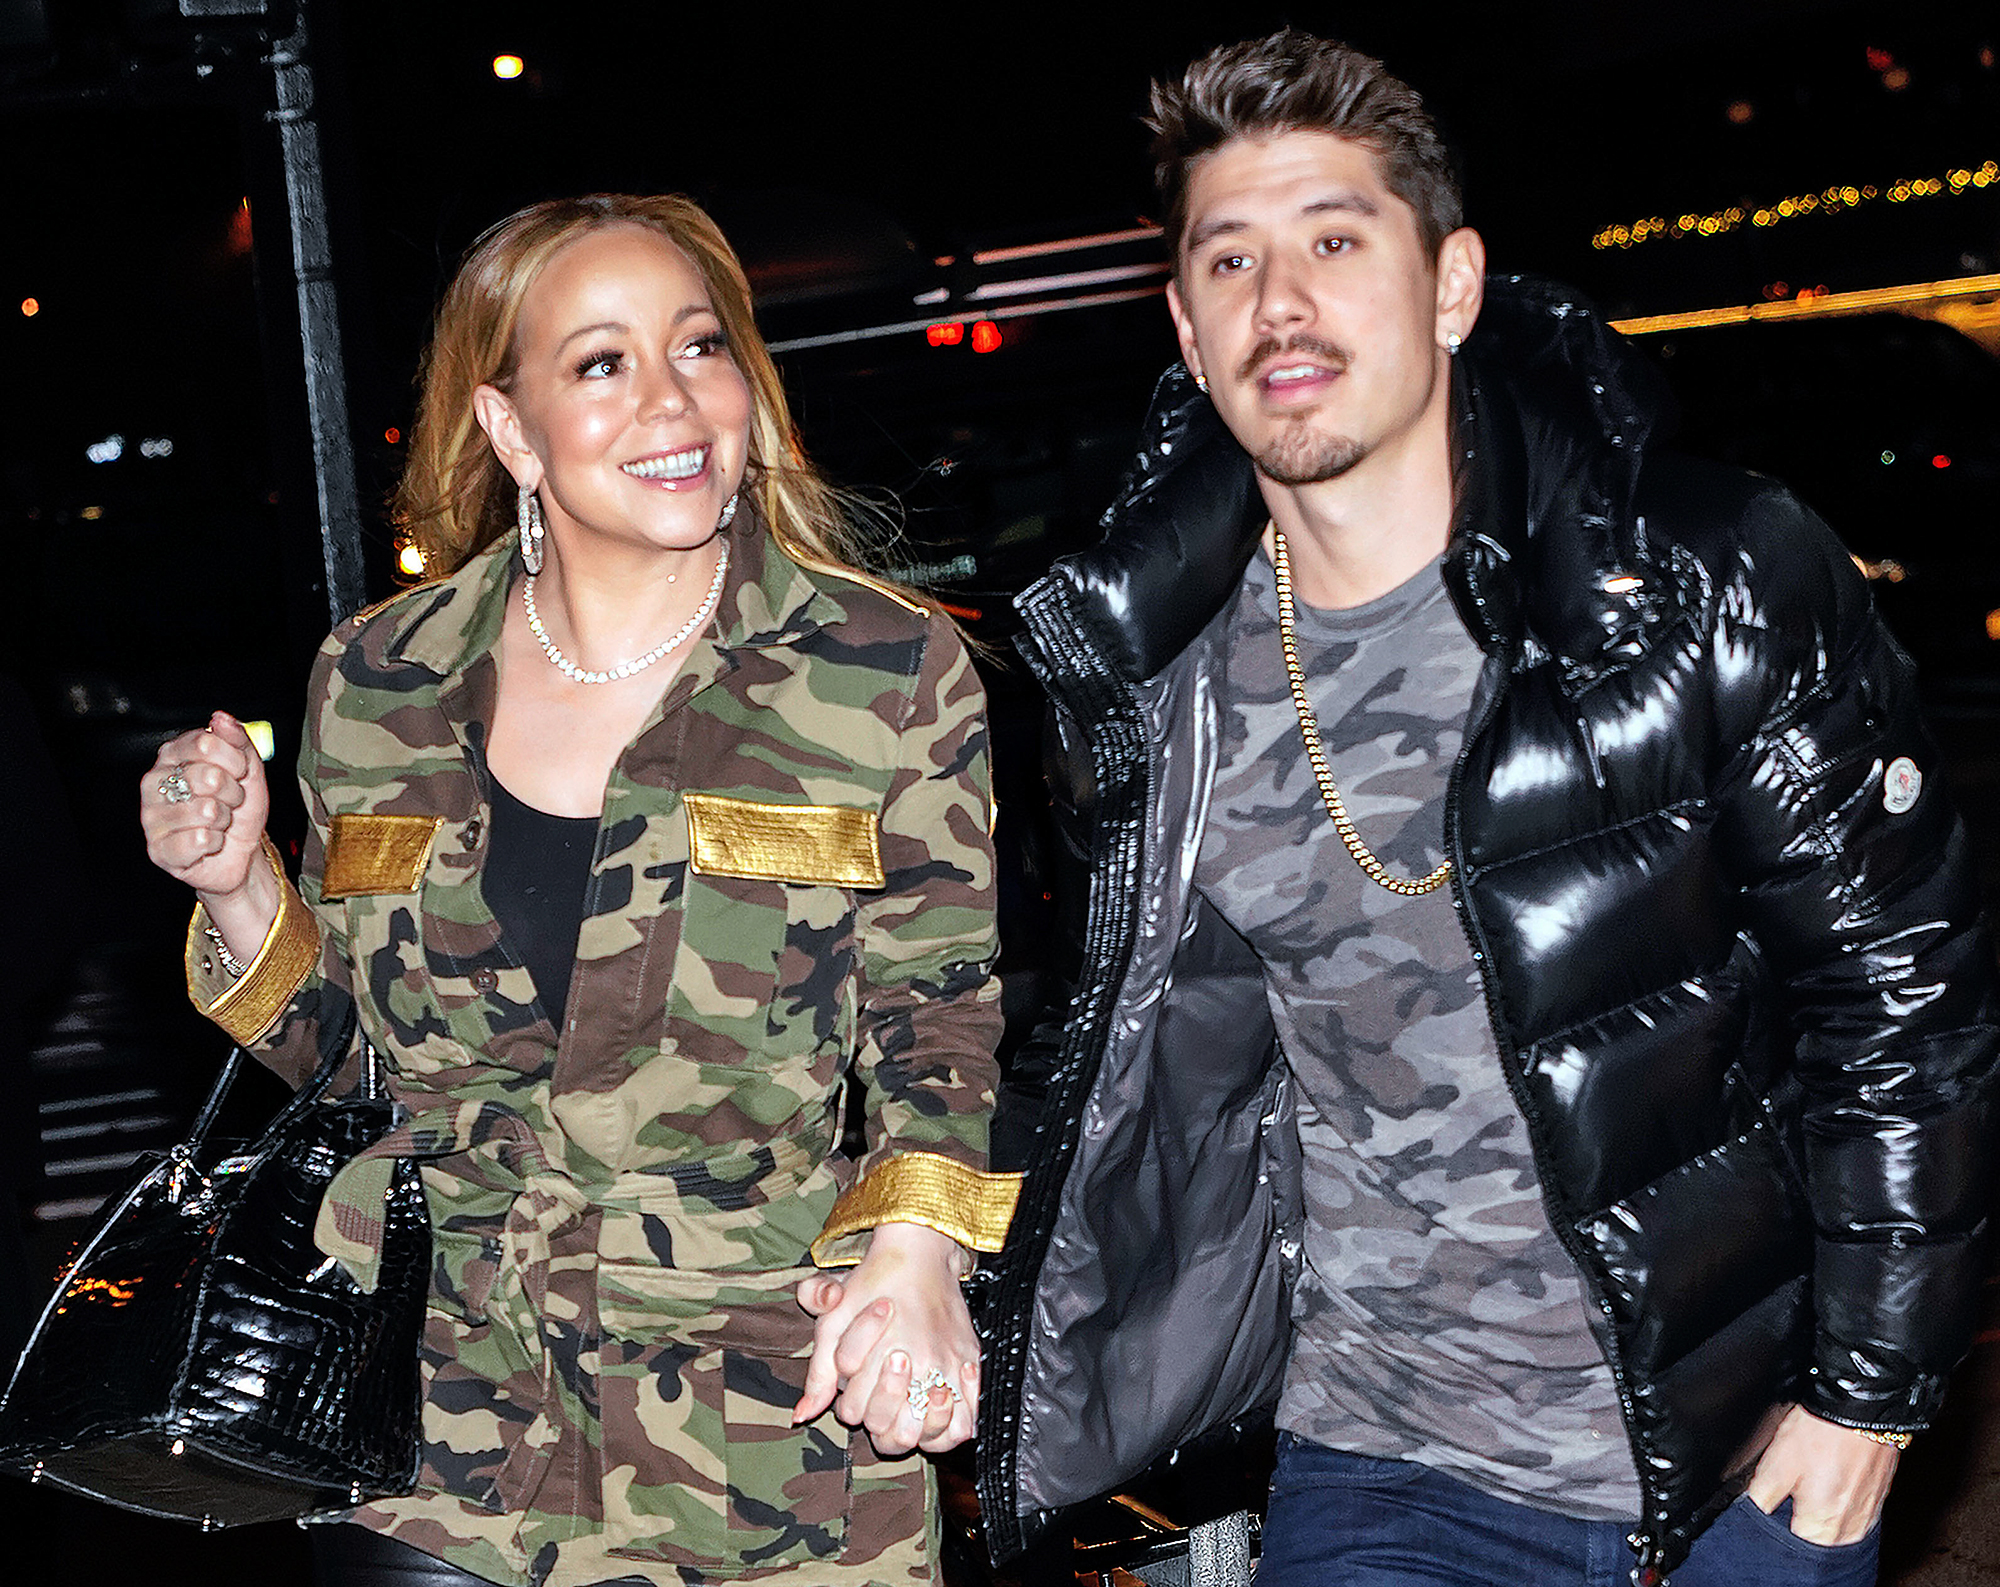 EXCLUSIVE: Mariah Carey and Bryan Tanaka go for date night in New York City at the Bowery Hotel and Buddakan